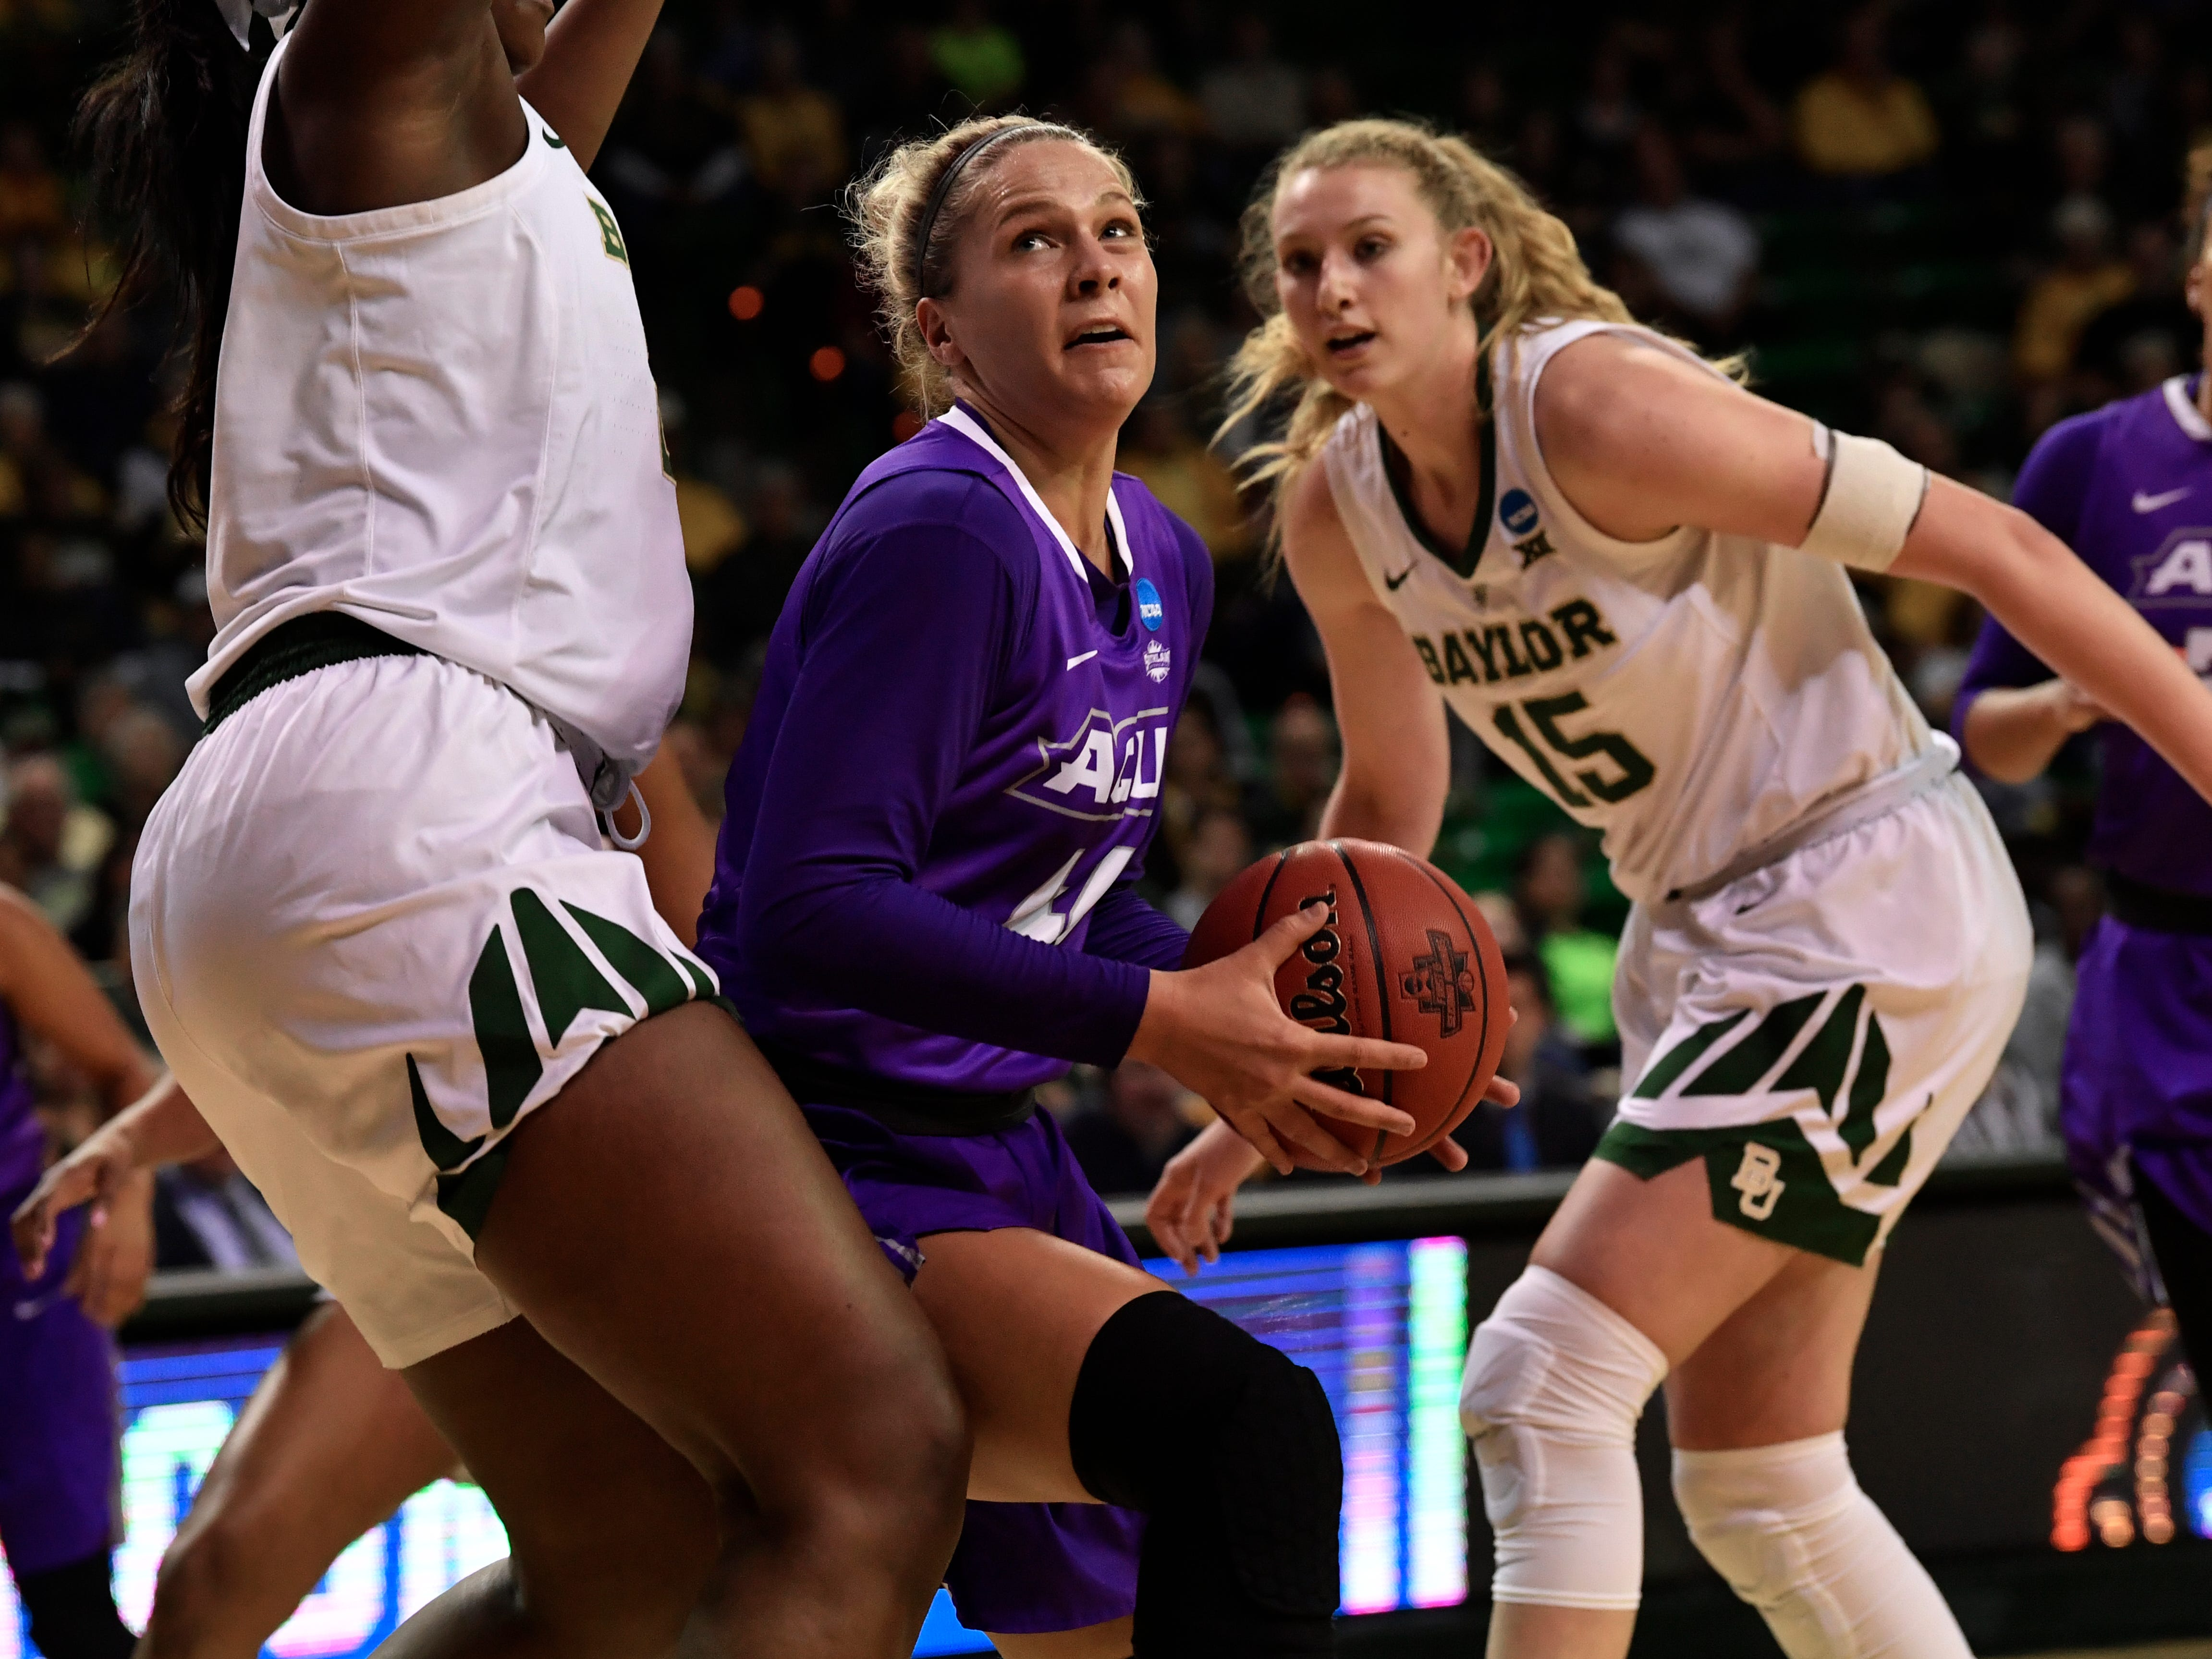 ACU forward Lexie Ducat looks for an opening at the basket during Saturday's NCAA Tournament women's round 1 basketball game March 23, 2019. Baylor defeated Abilene Christian University, 95-38.